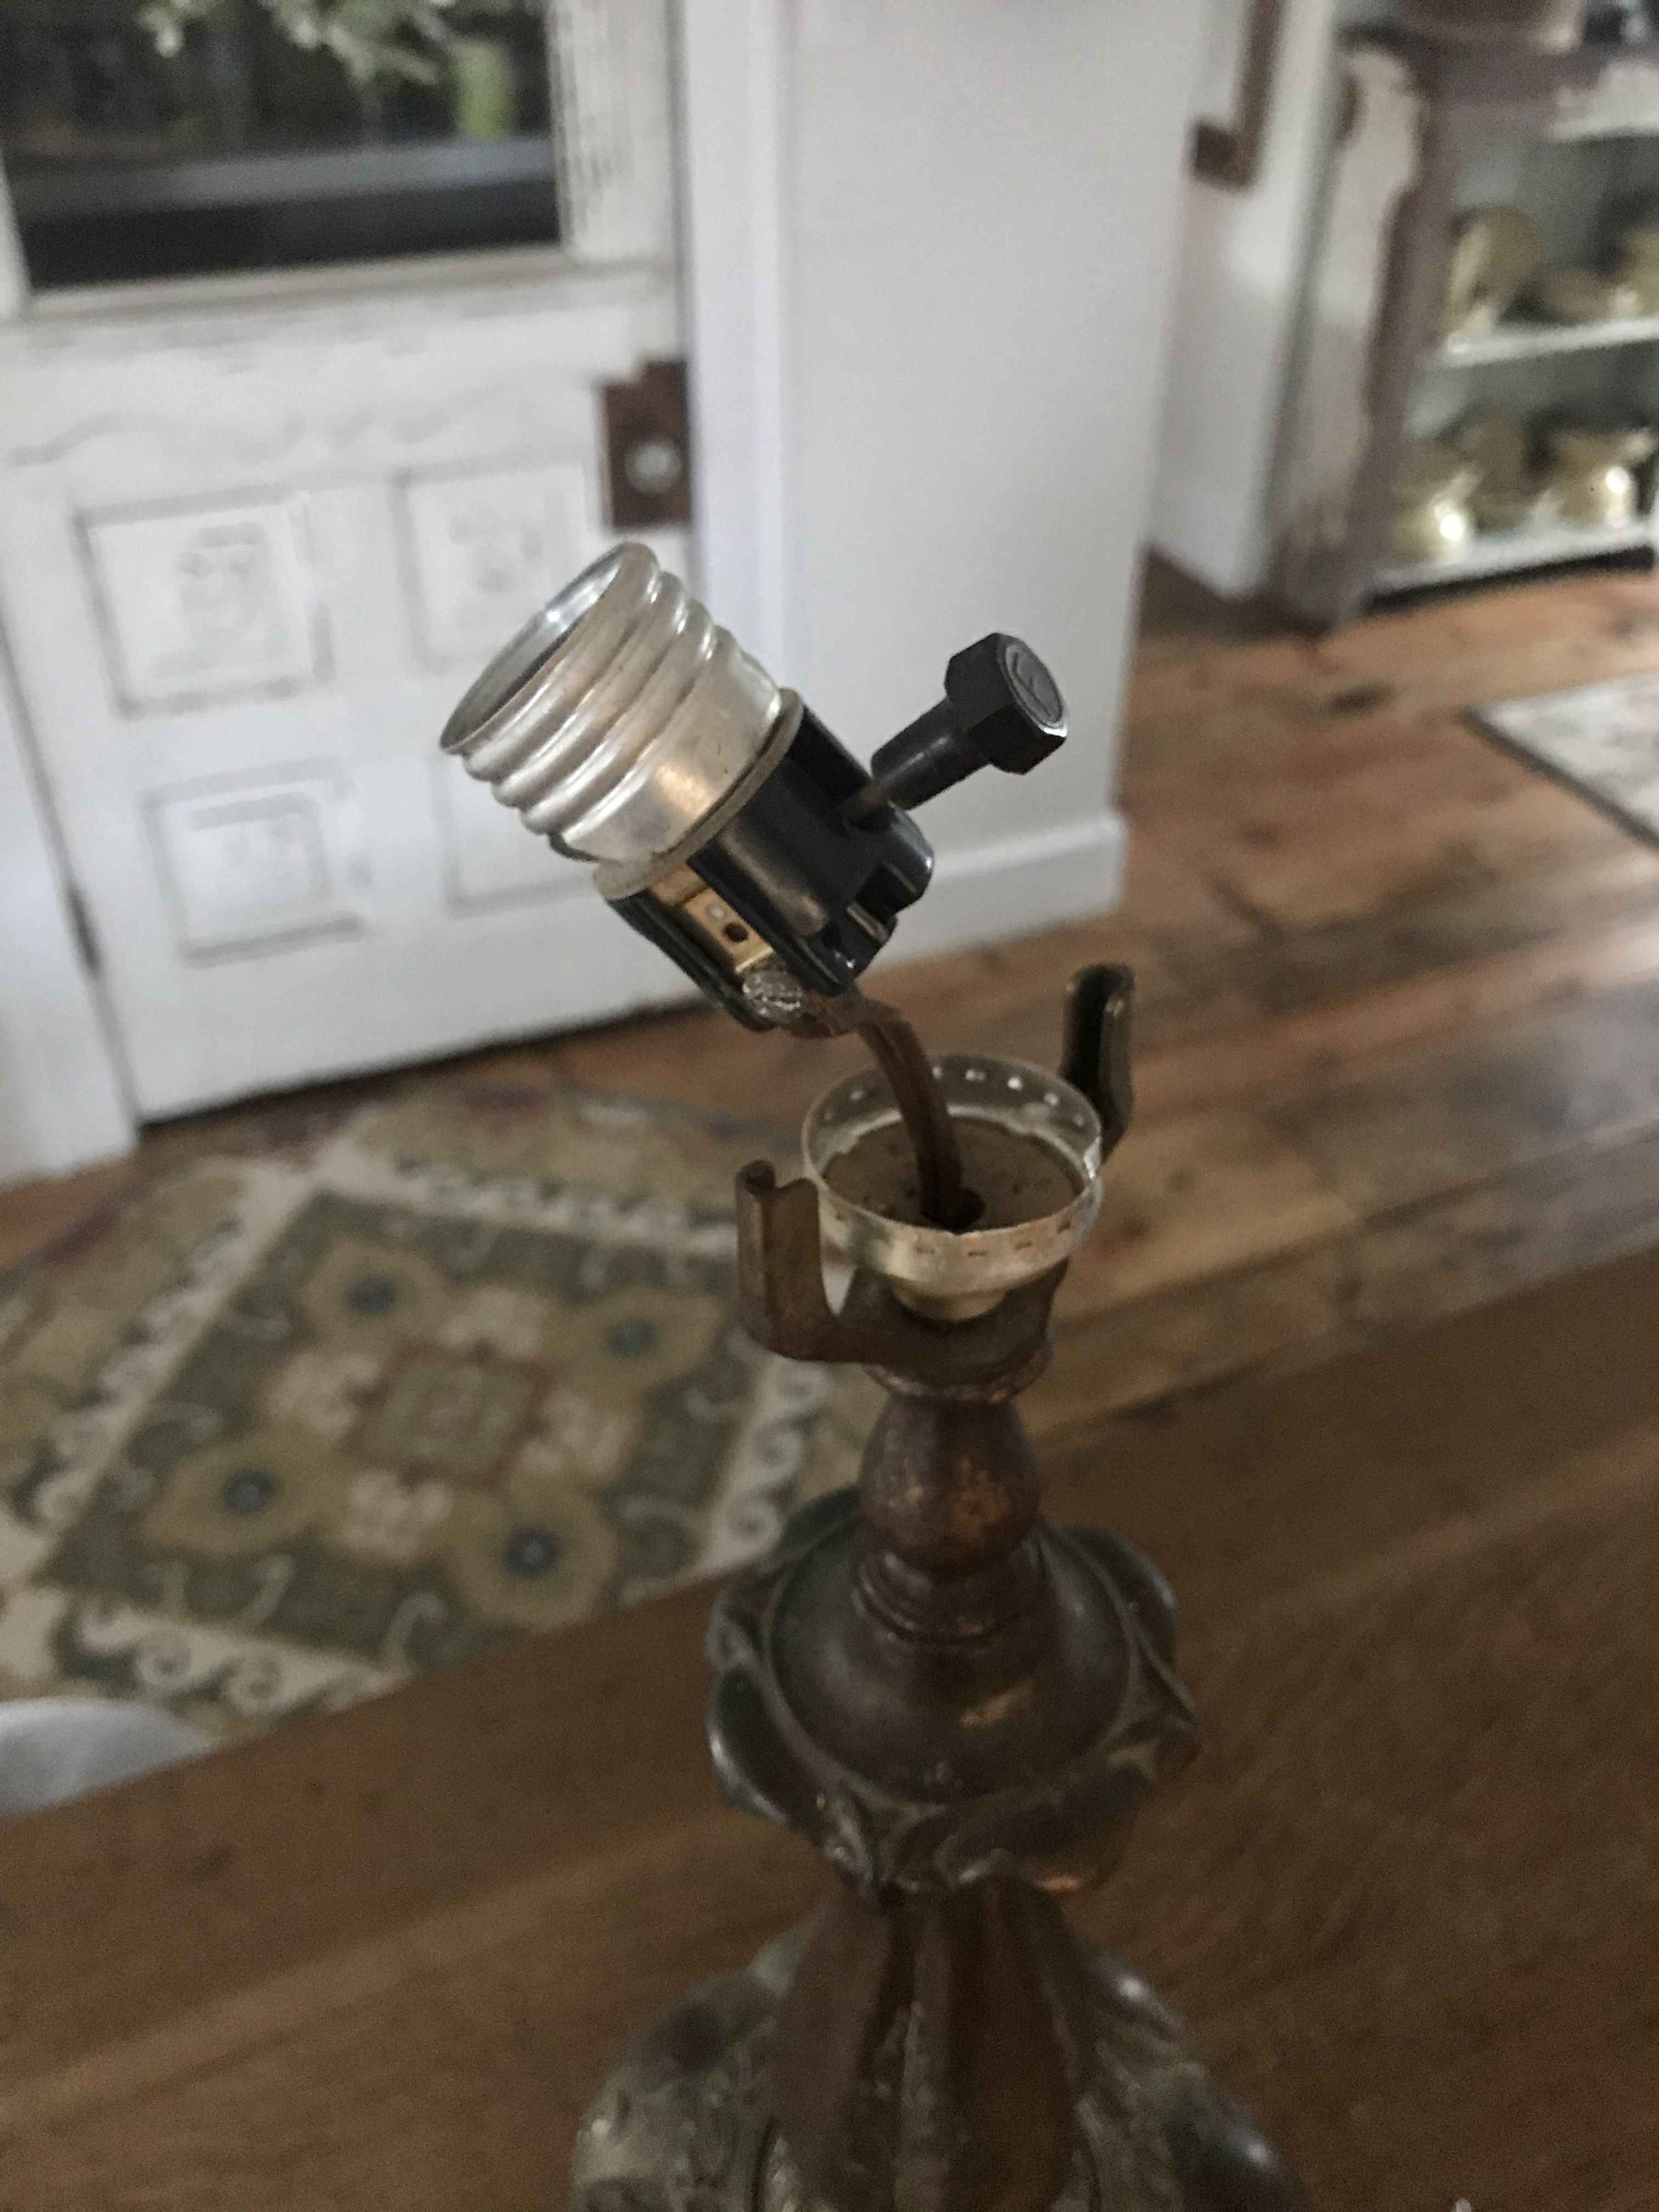 How To Make A Nightlight Out Of An Old Lamp House On Winchester Night Light Night Light Bulbs Lamp